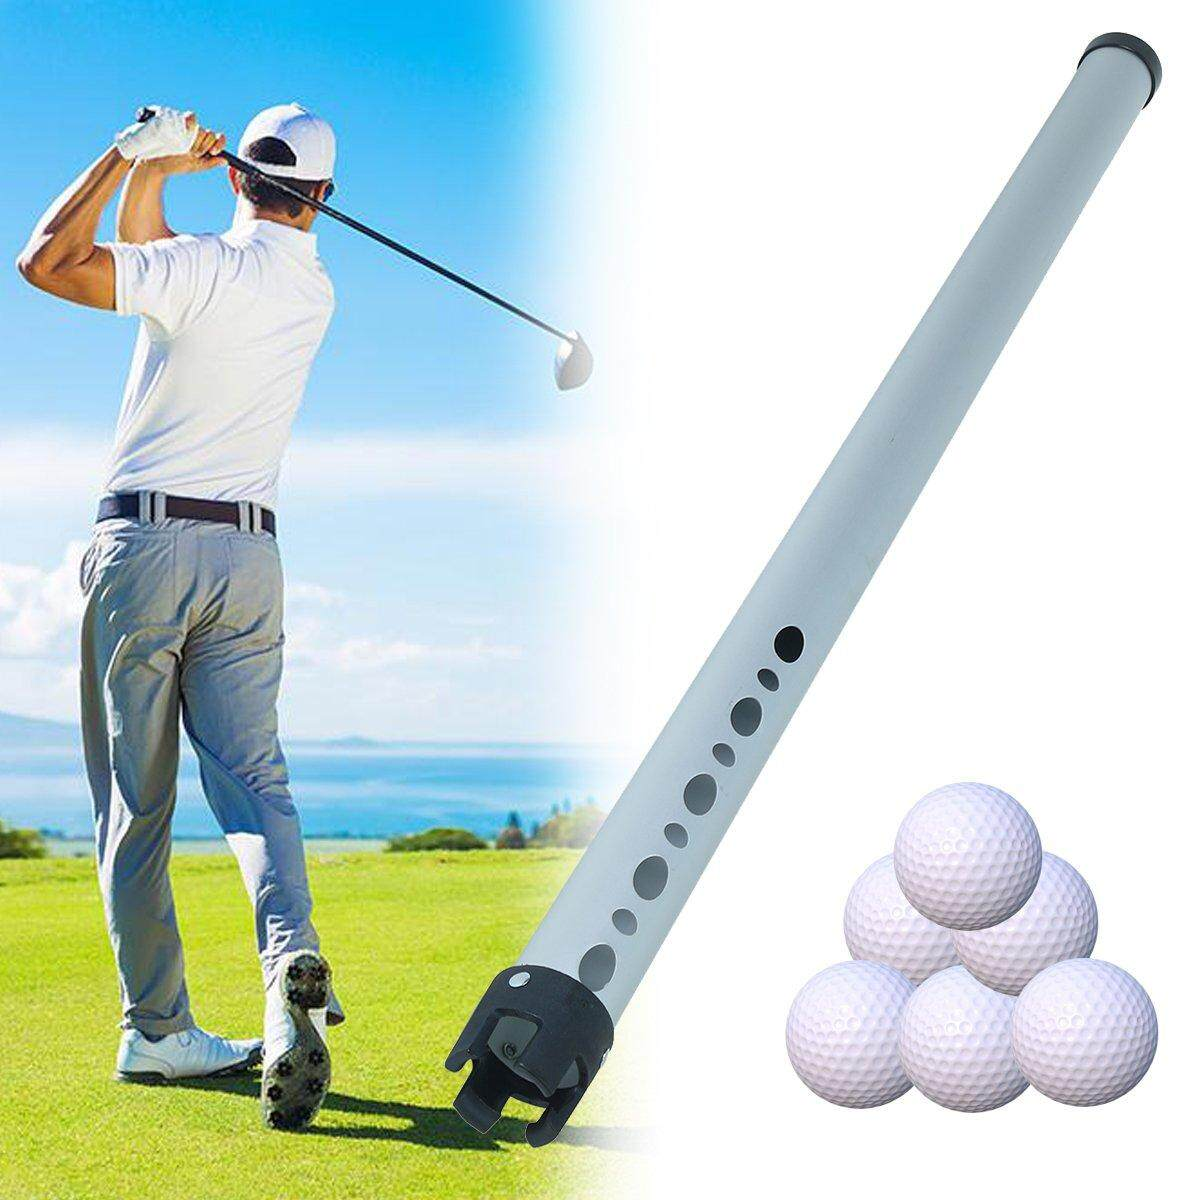 Portable Aluminum Shag Tube Practice Golf Ball Shagger Picker Hold Up 23 Balls By Glimmer.